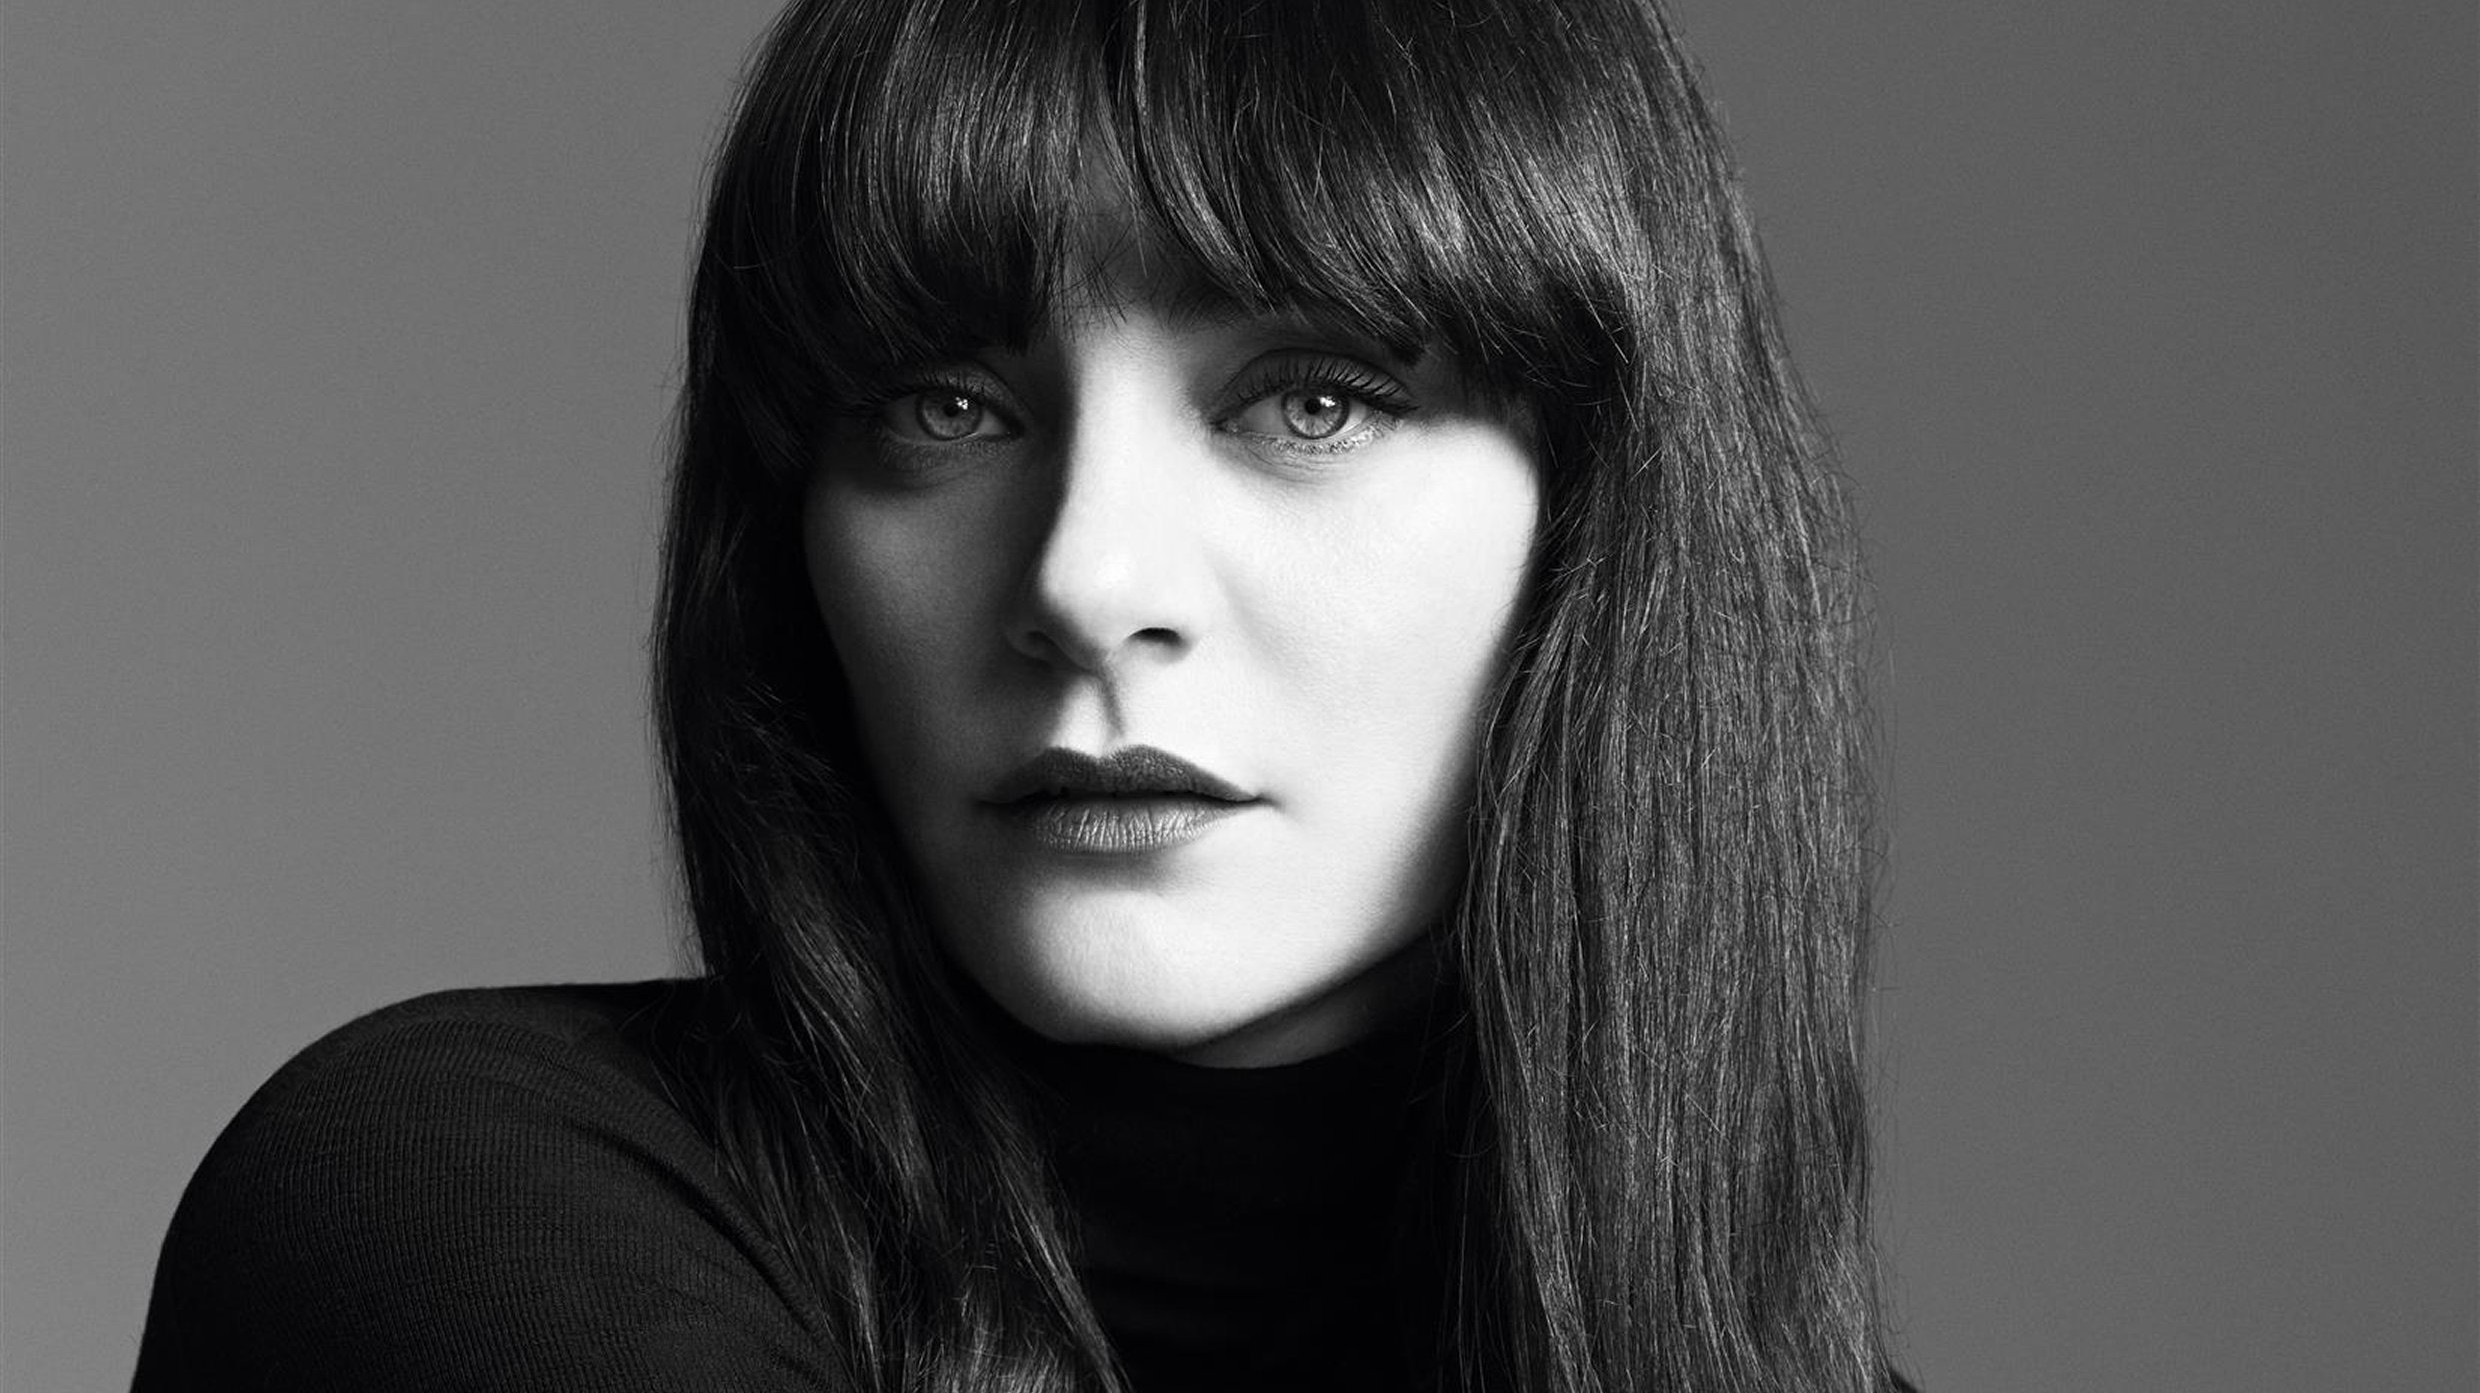 lucia pica announced as the new global creative director of make-up and colour for chanel